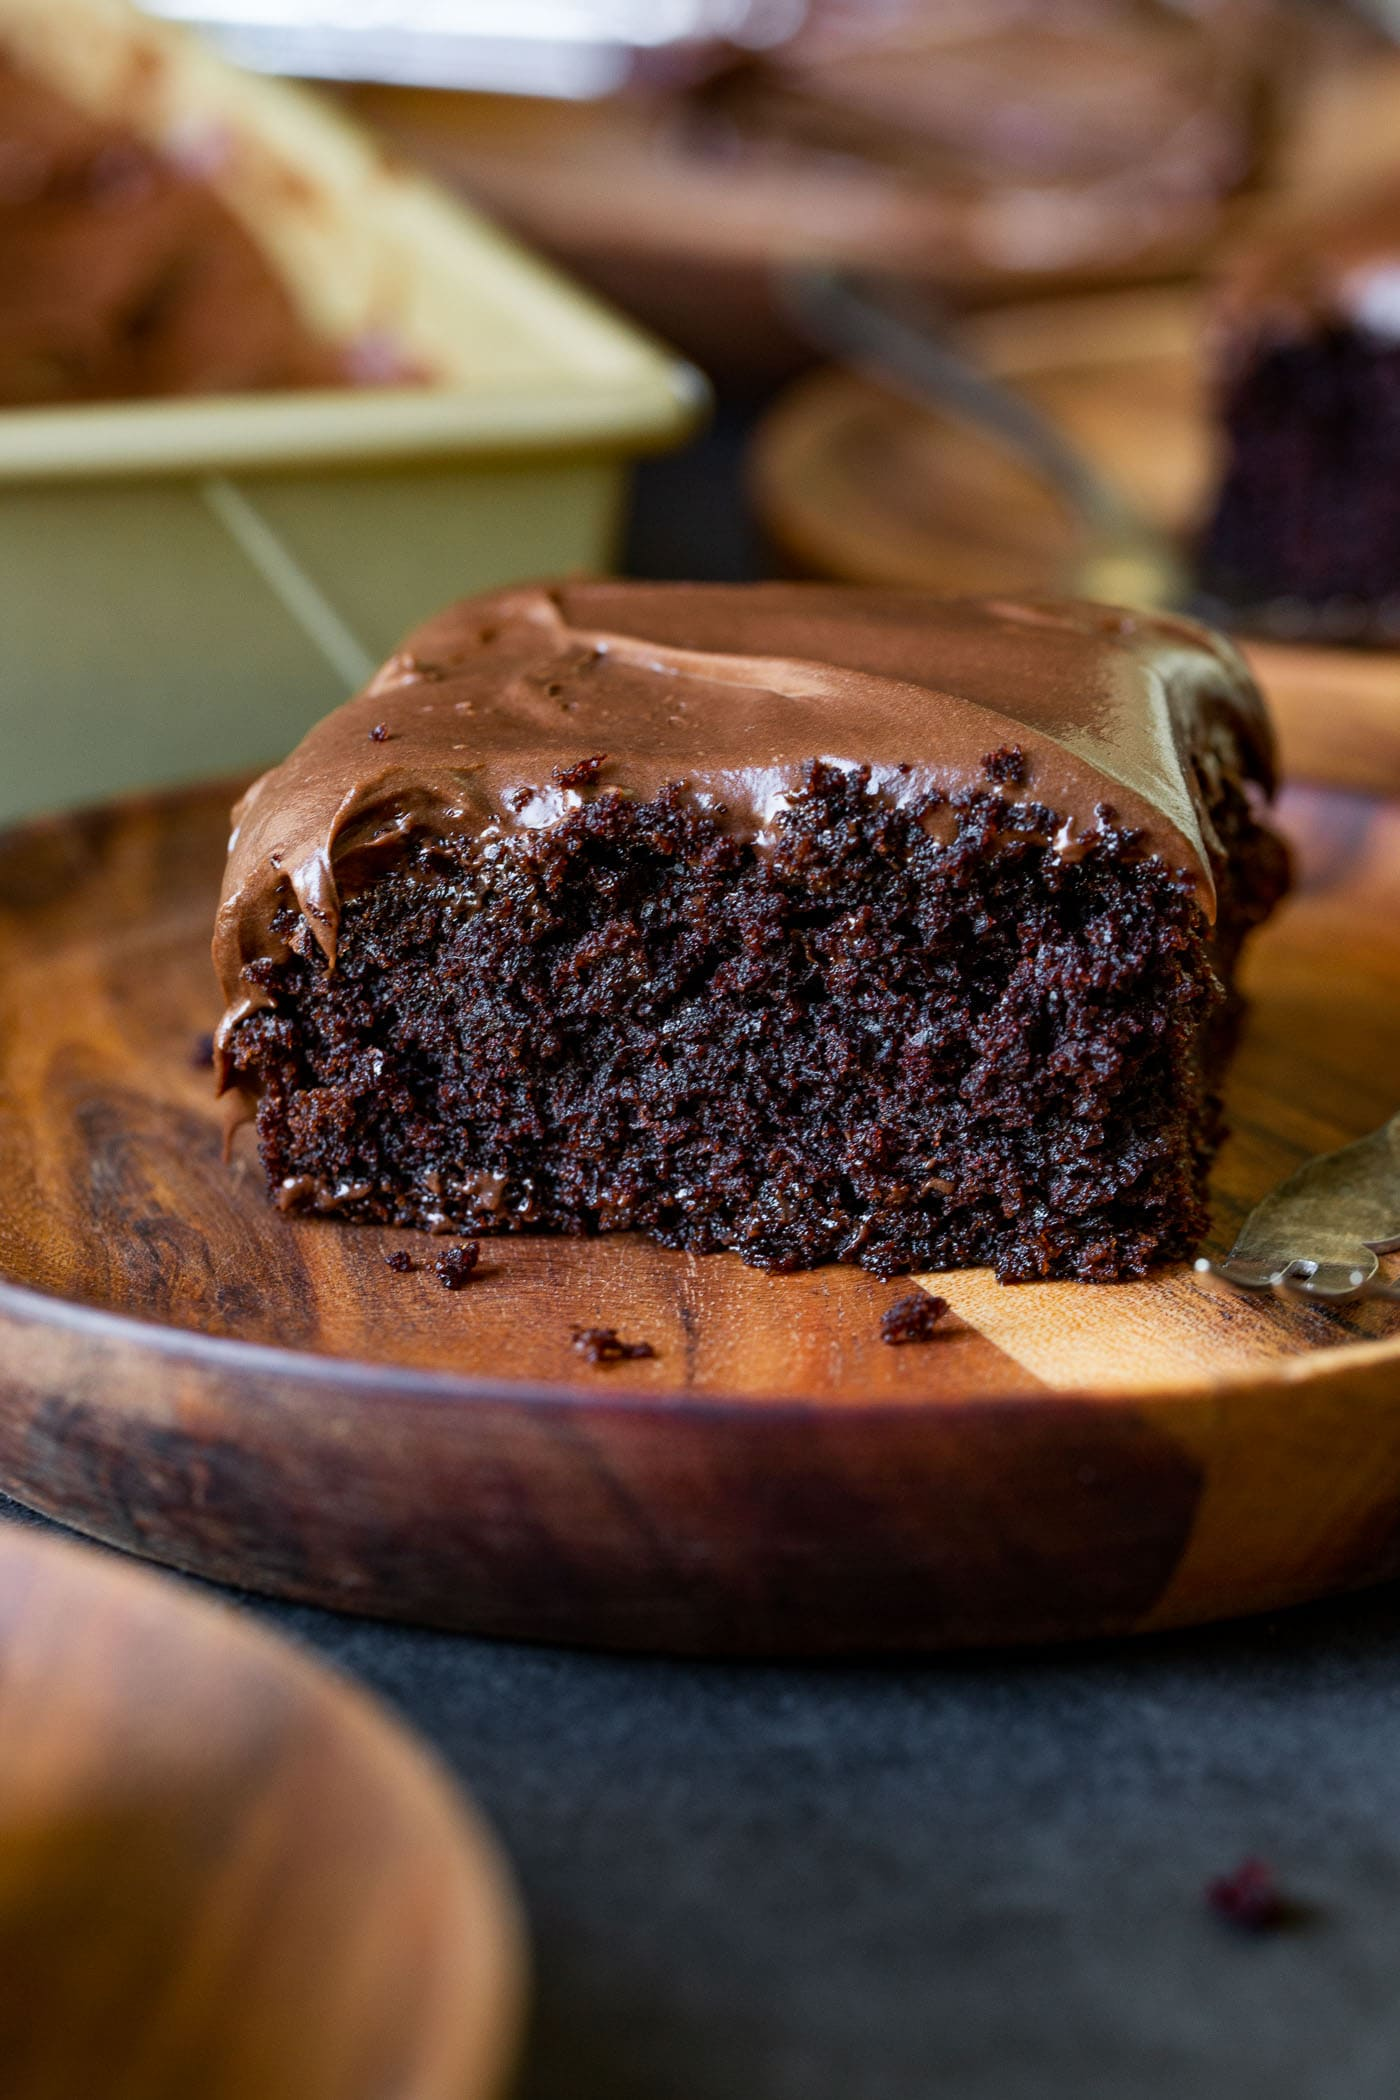 A slice of moist chocolate zucchini cake on a wooden dessert plate. The cake is frosted with chocolate cream cheese frosting.